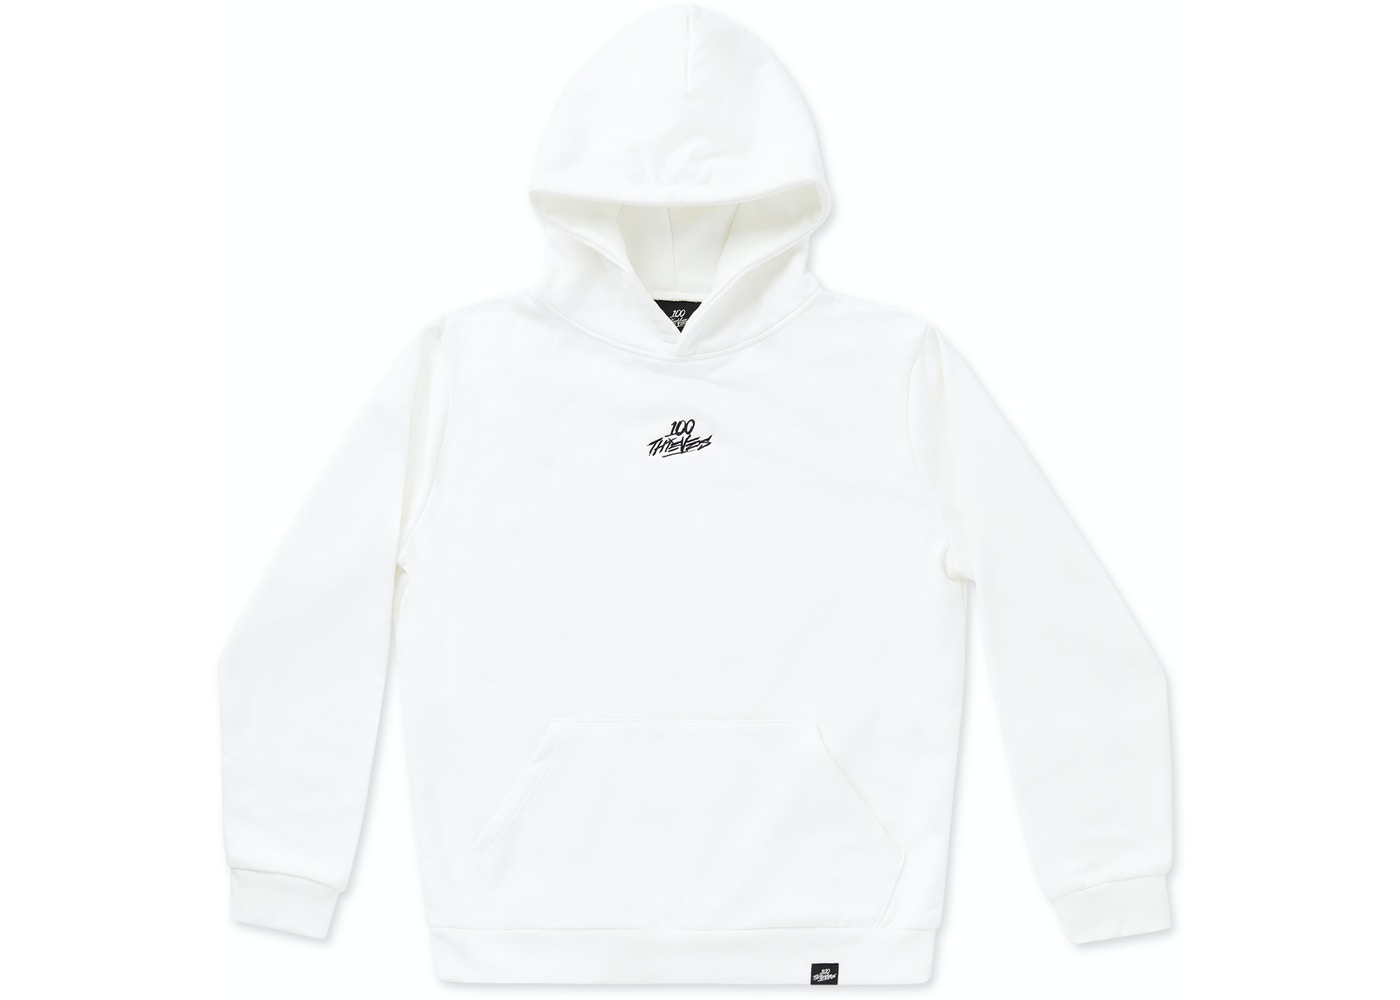 undefeated x cheaper sale 100 Thieves 2019 Hoodie Cream - FW19